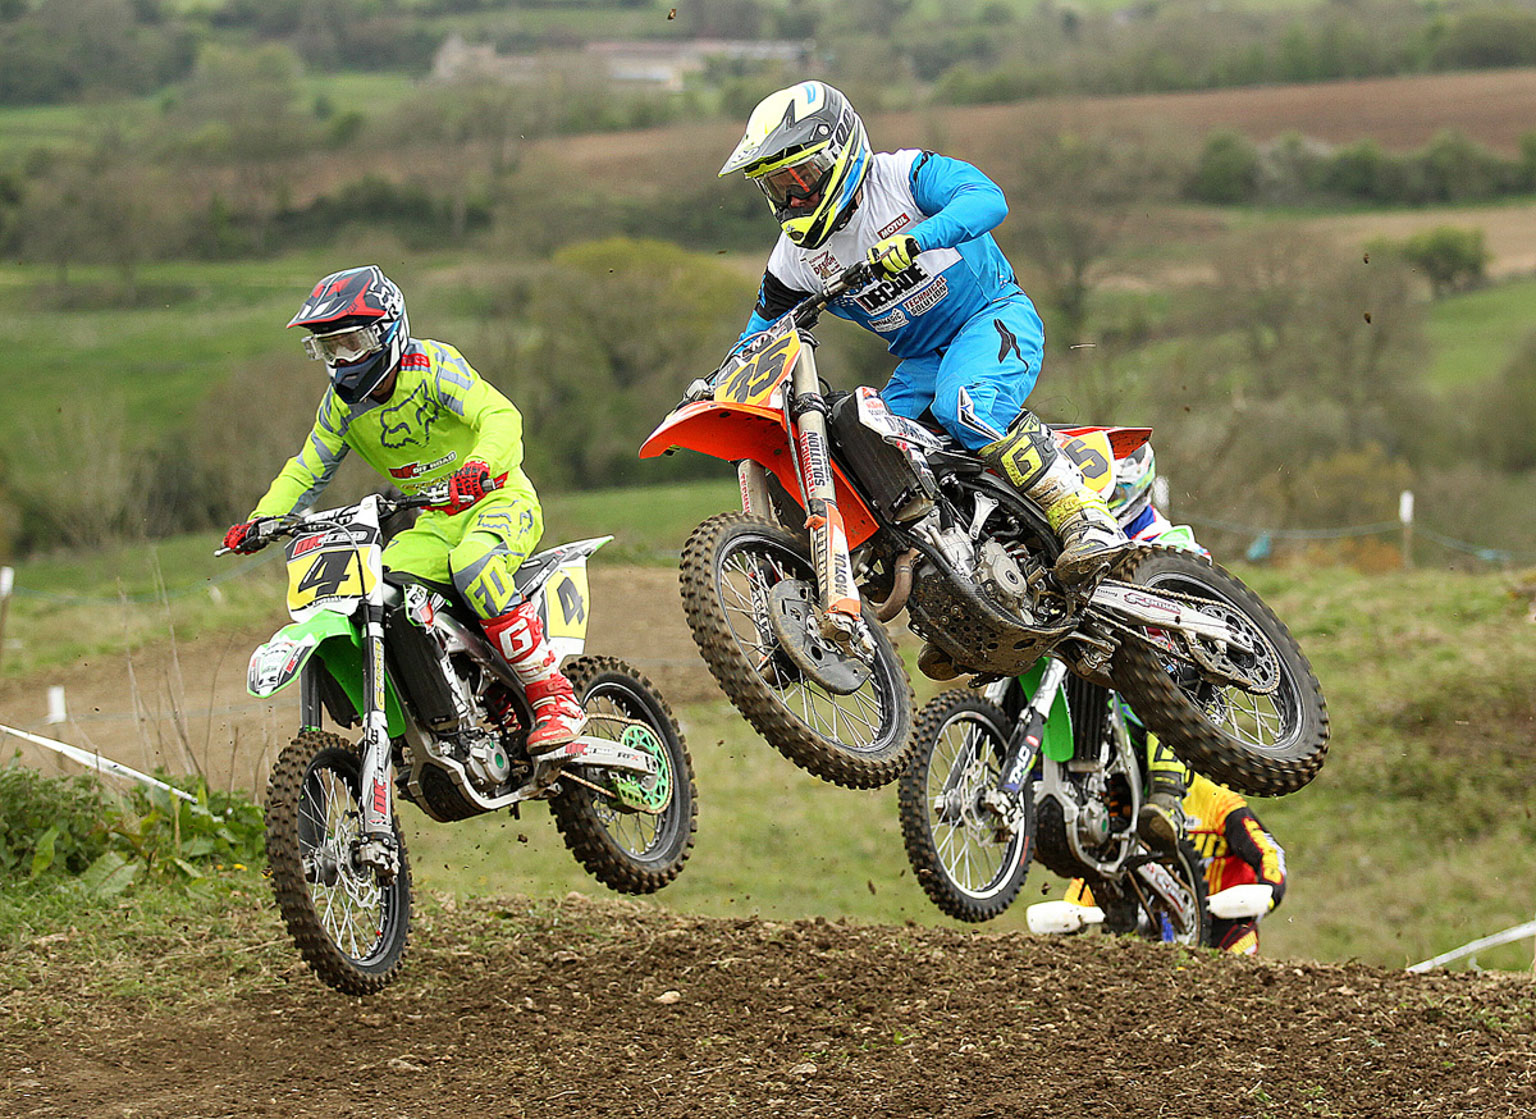 ary Gibson(4) and John May in MX1 moto two